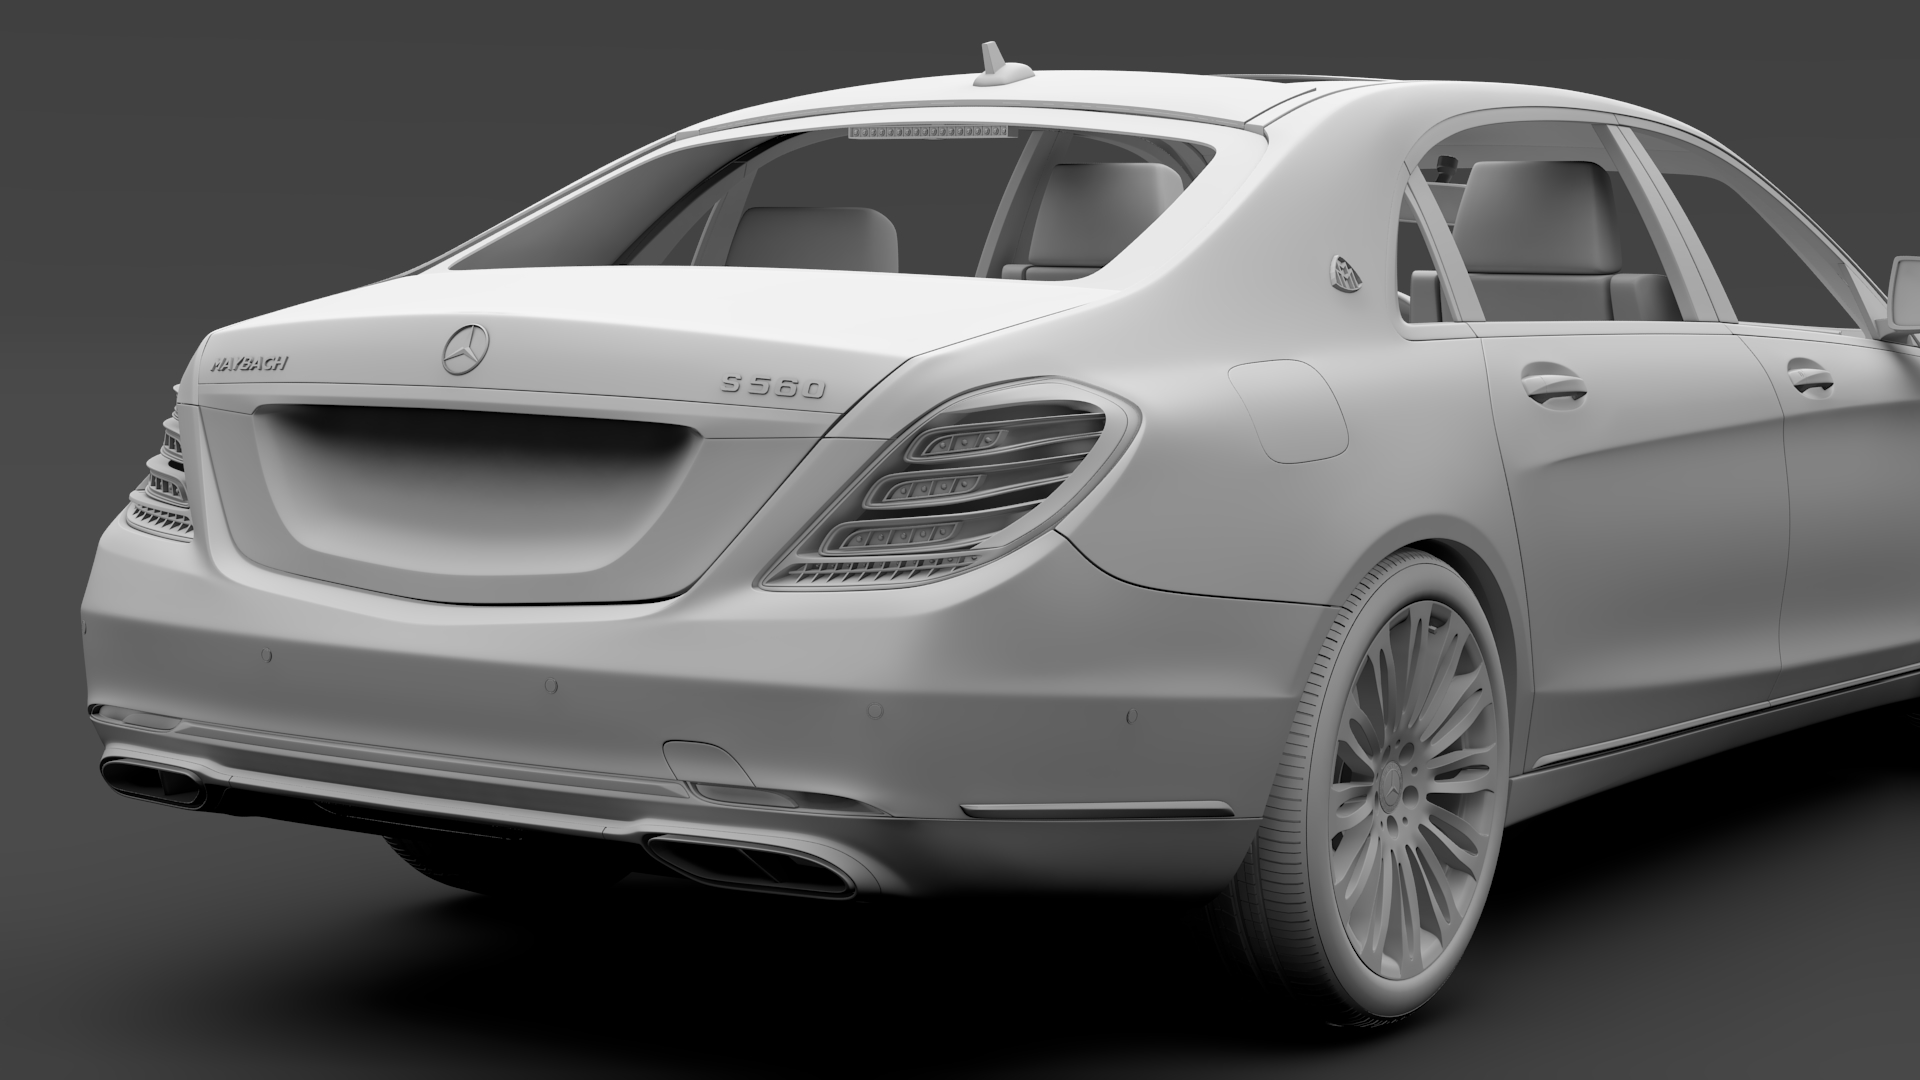 mercedes maybach s 560 4matic x222 2018 3d model 3ds max fbx c4d lwo ma mb hrc xsi obj 284443